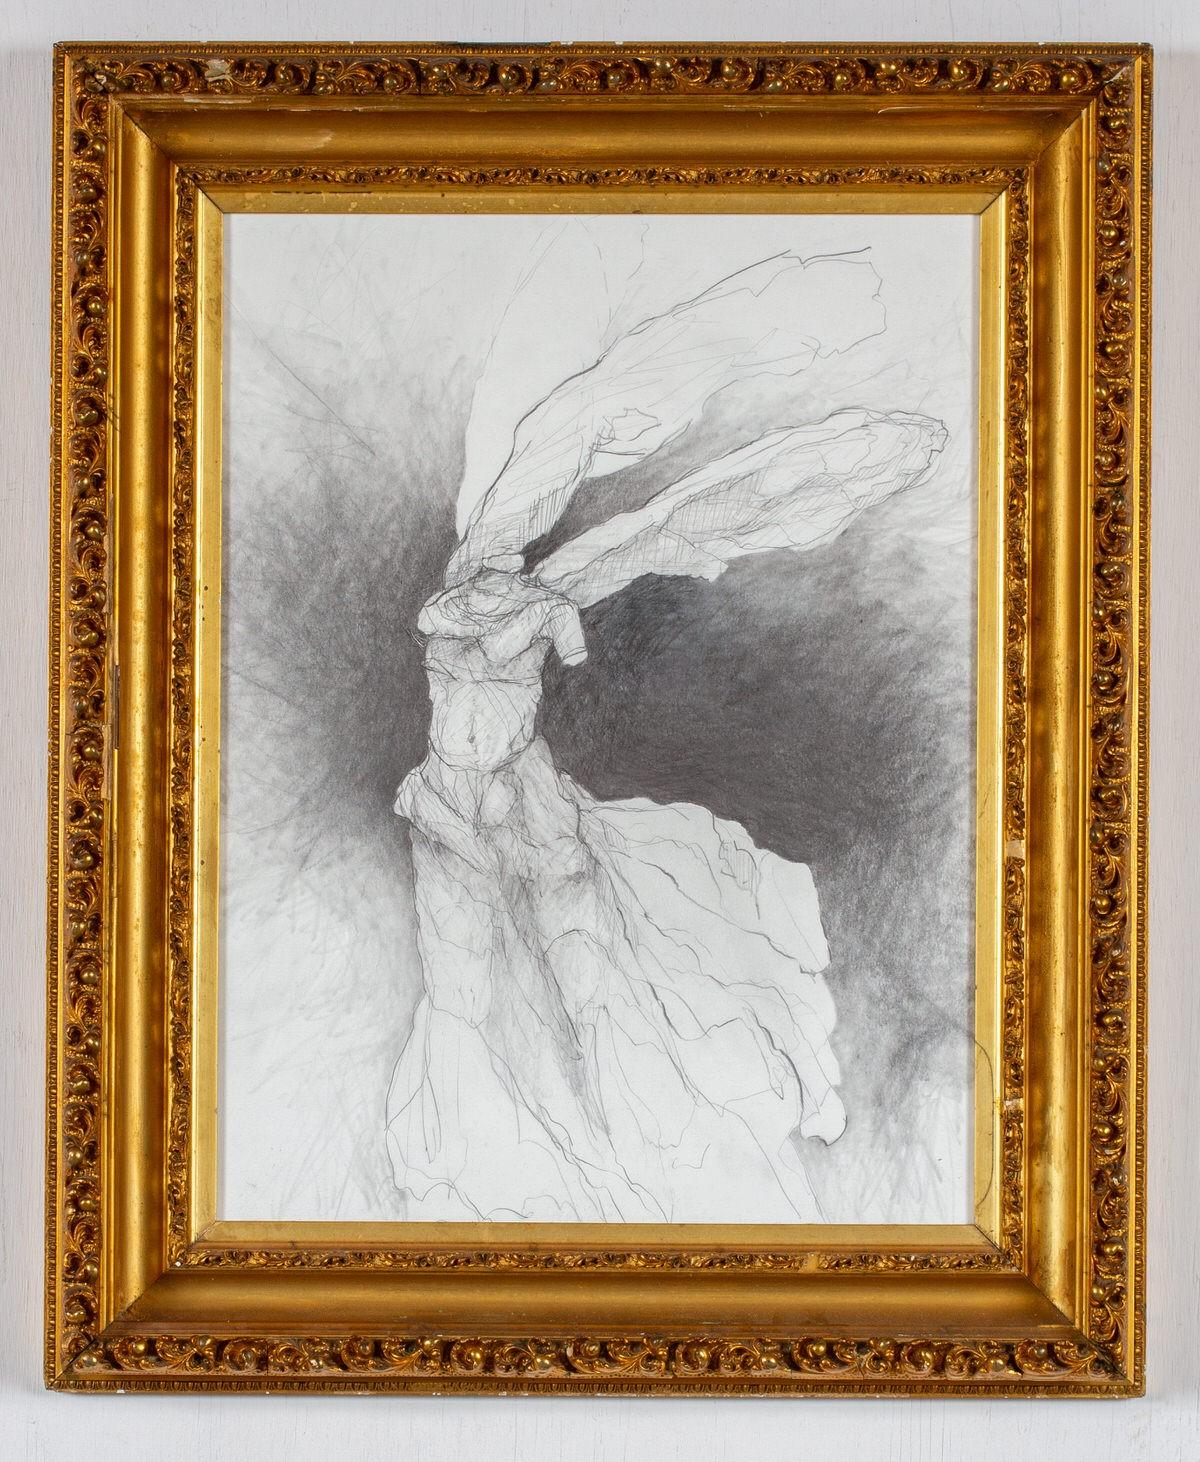 Nike VII (Abstracted Figurative Drawing of Winged Goddess in Antique Gold Frame)